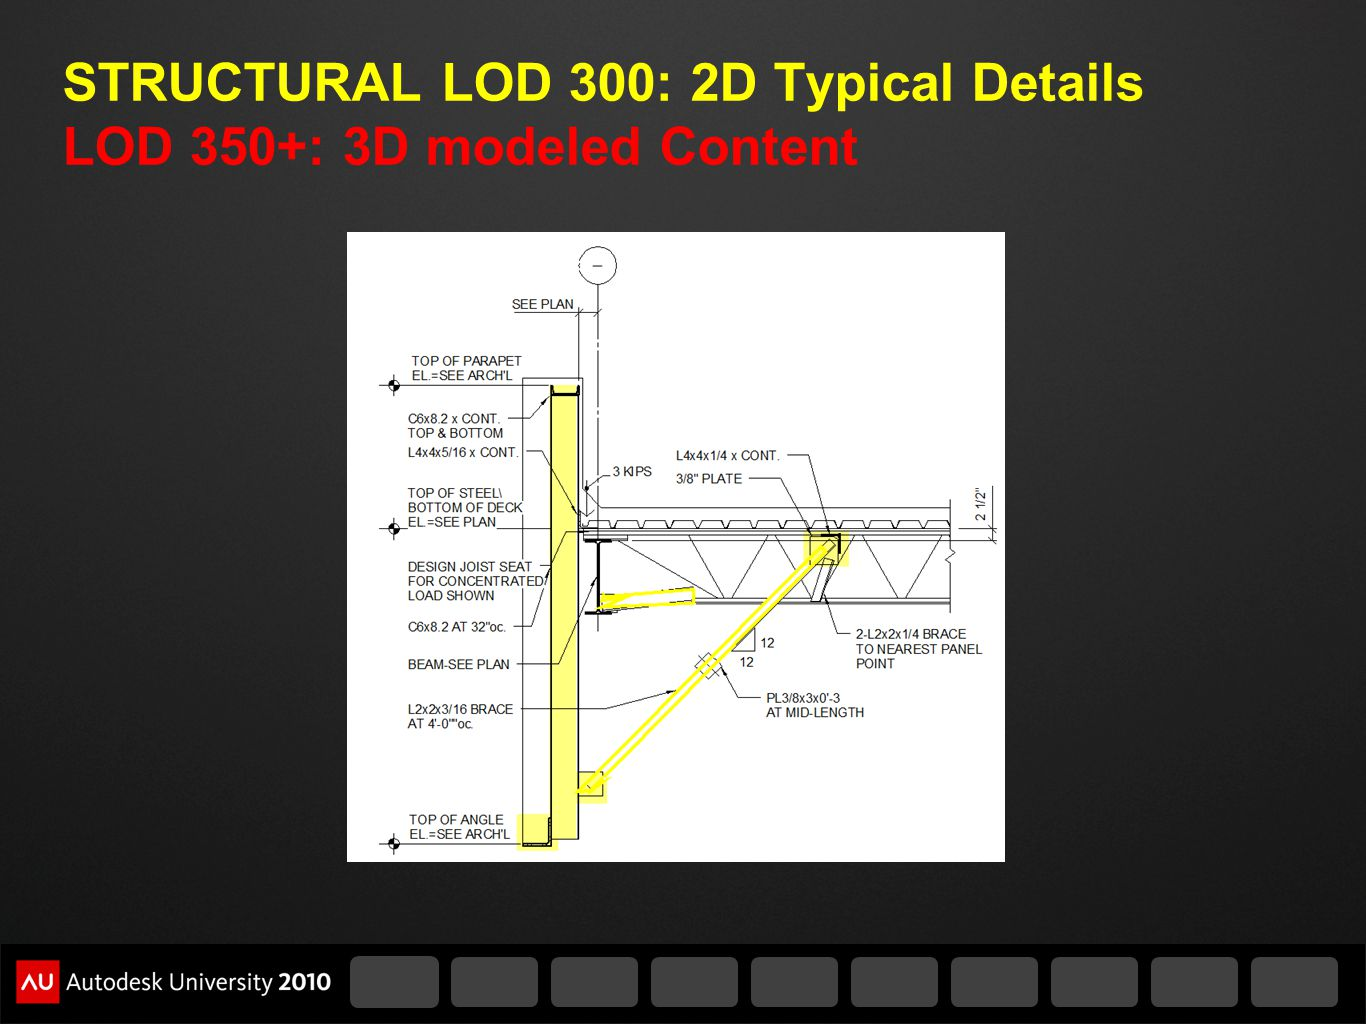 STRUCTURAL LOD 300: 2D Typical Details LOD 350+: 3D modeled Content